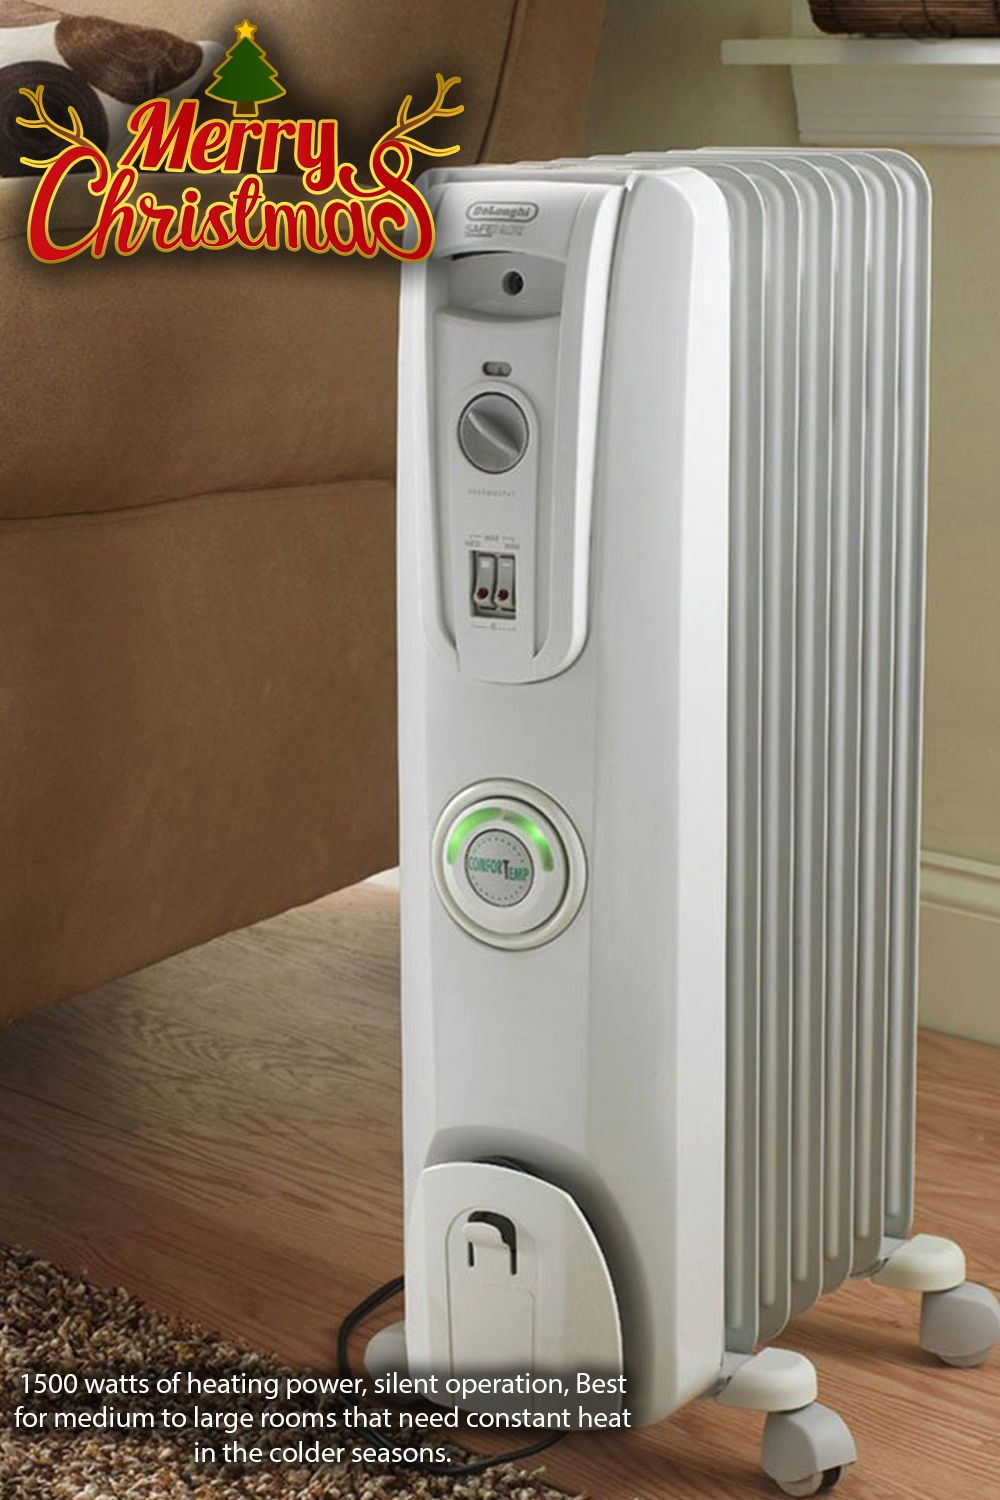 Top 10 Oil Filled Radiant Heaters April 2020 Reviews And Buyers Guide Oil Heater Heater Radiant Heaters